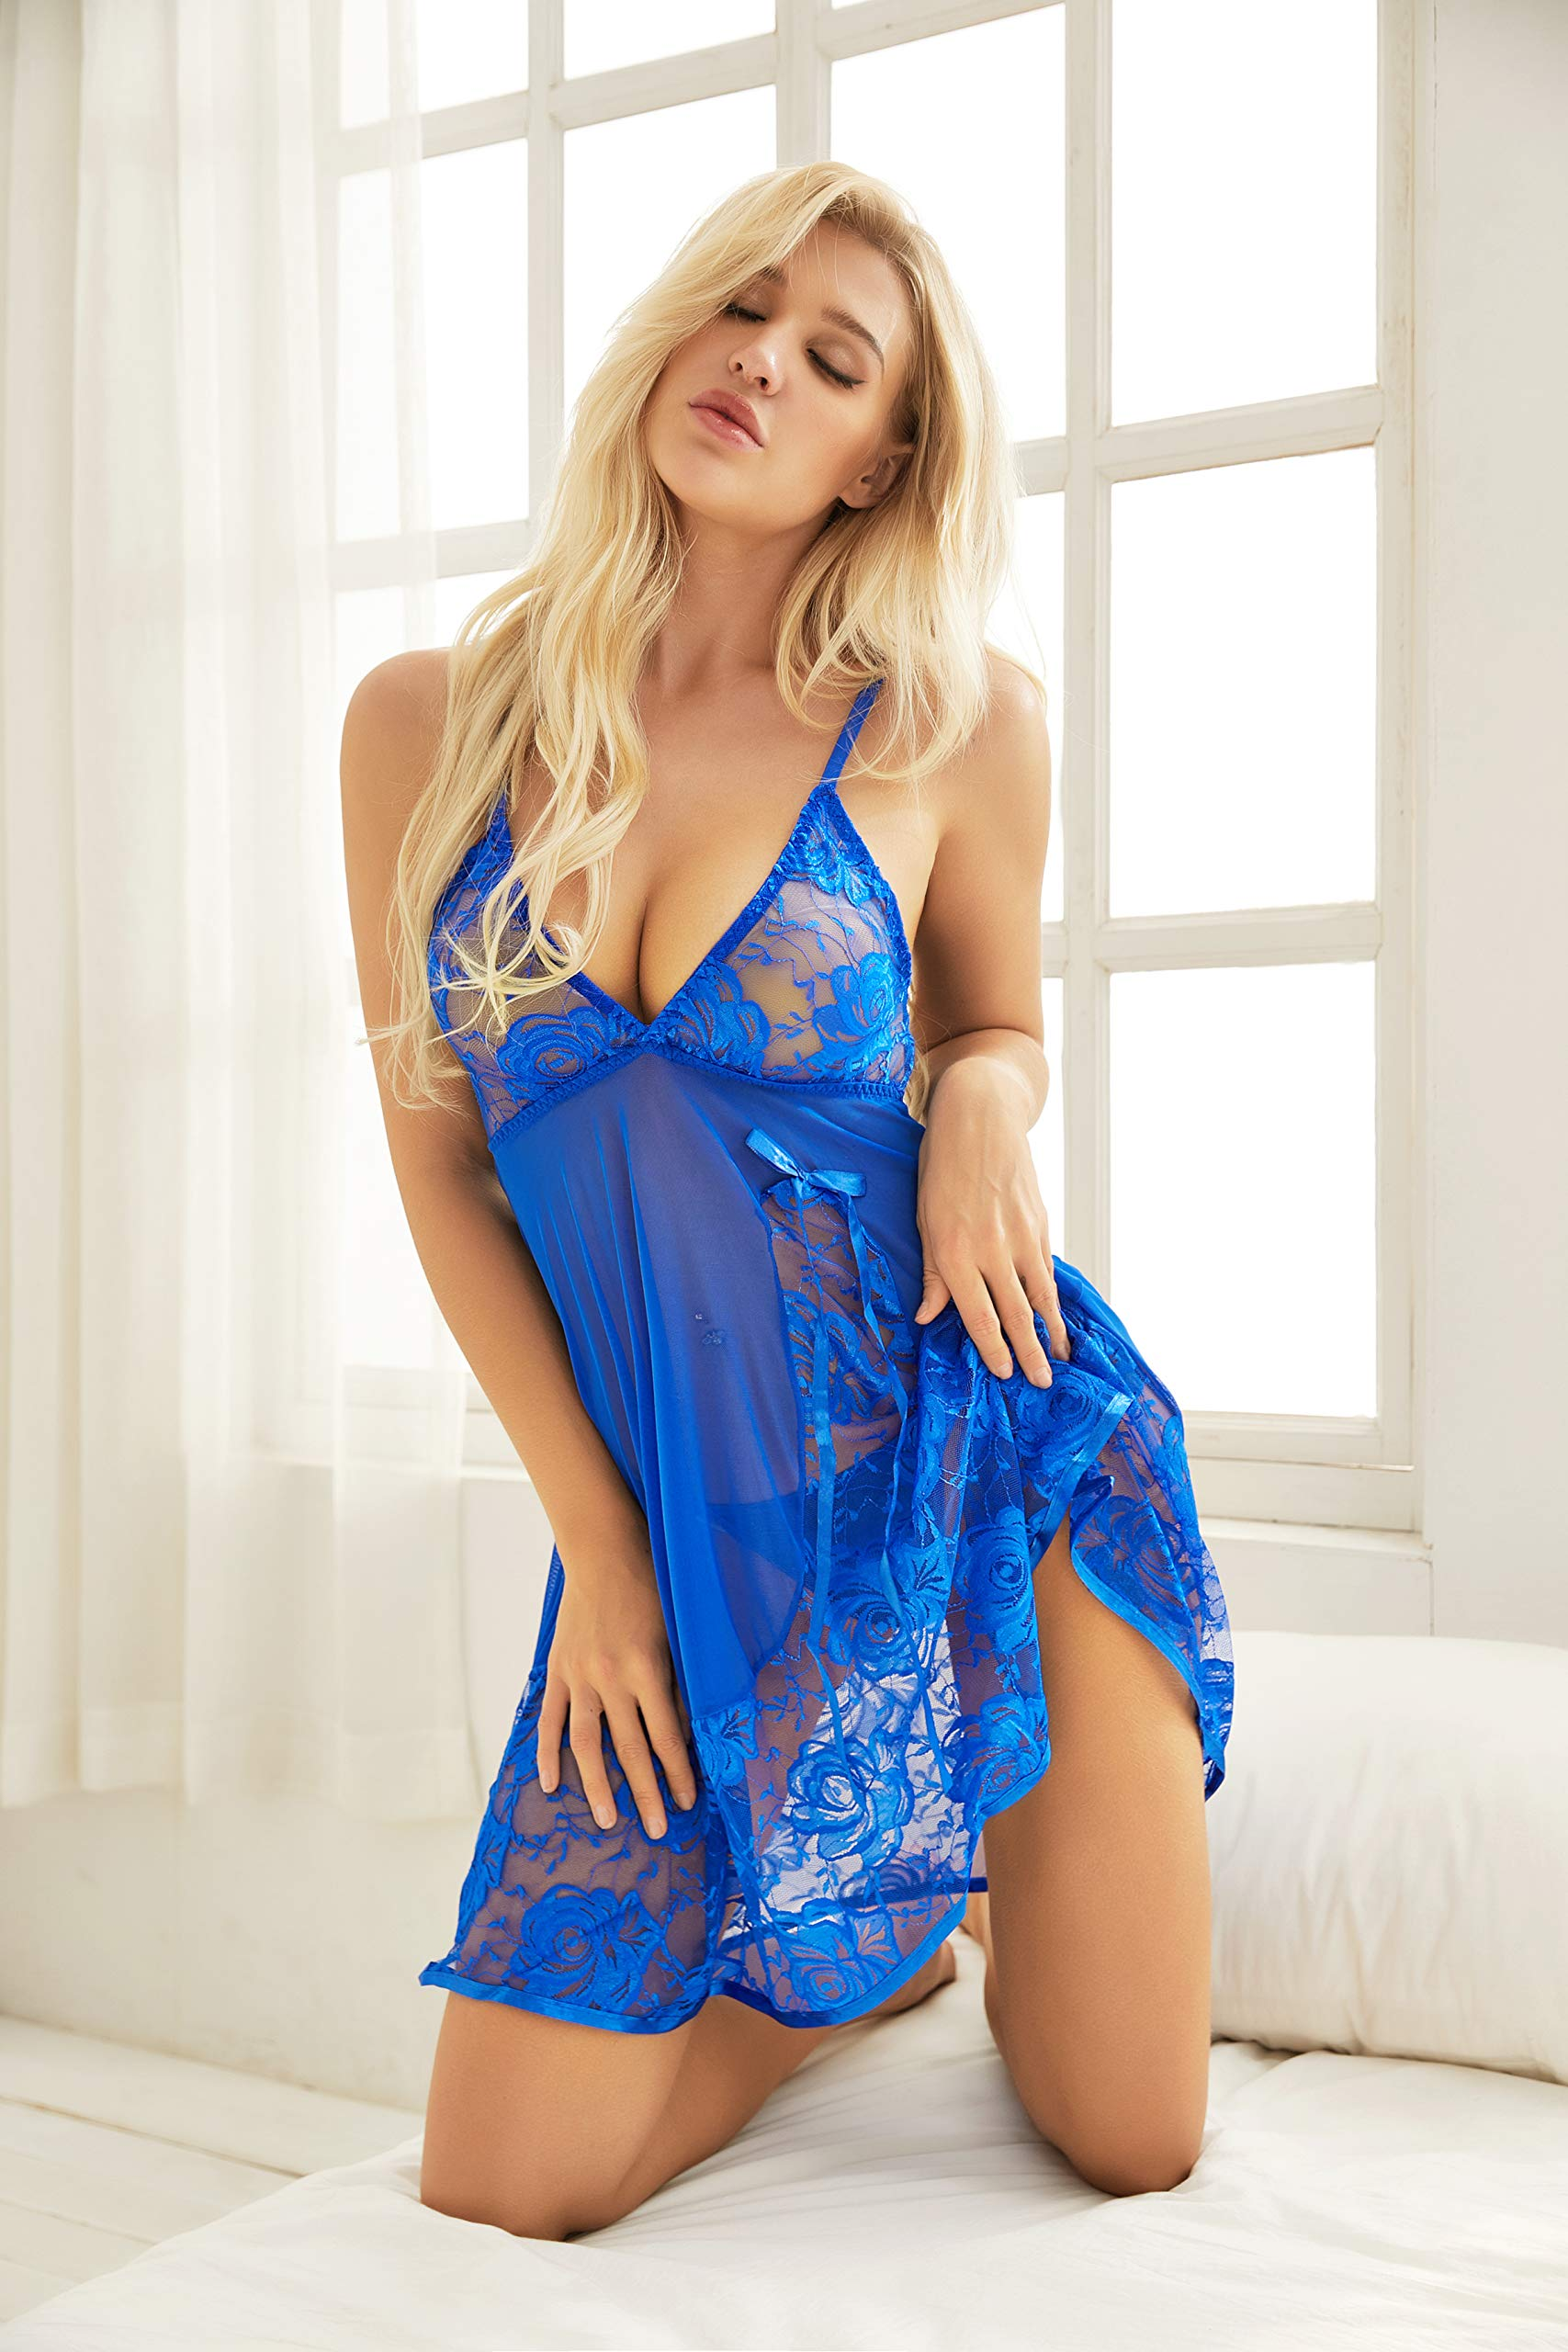 ADOREJOY Womens Babydoll Lingerie Set Plus Size Sleepwear(XL,Blue) - wiihuu